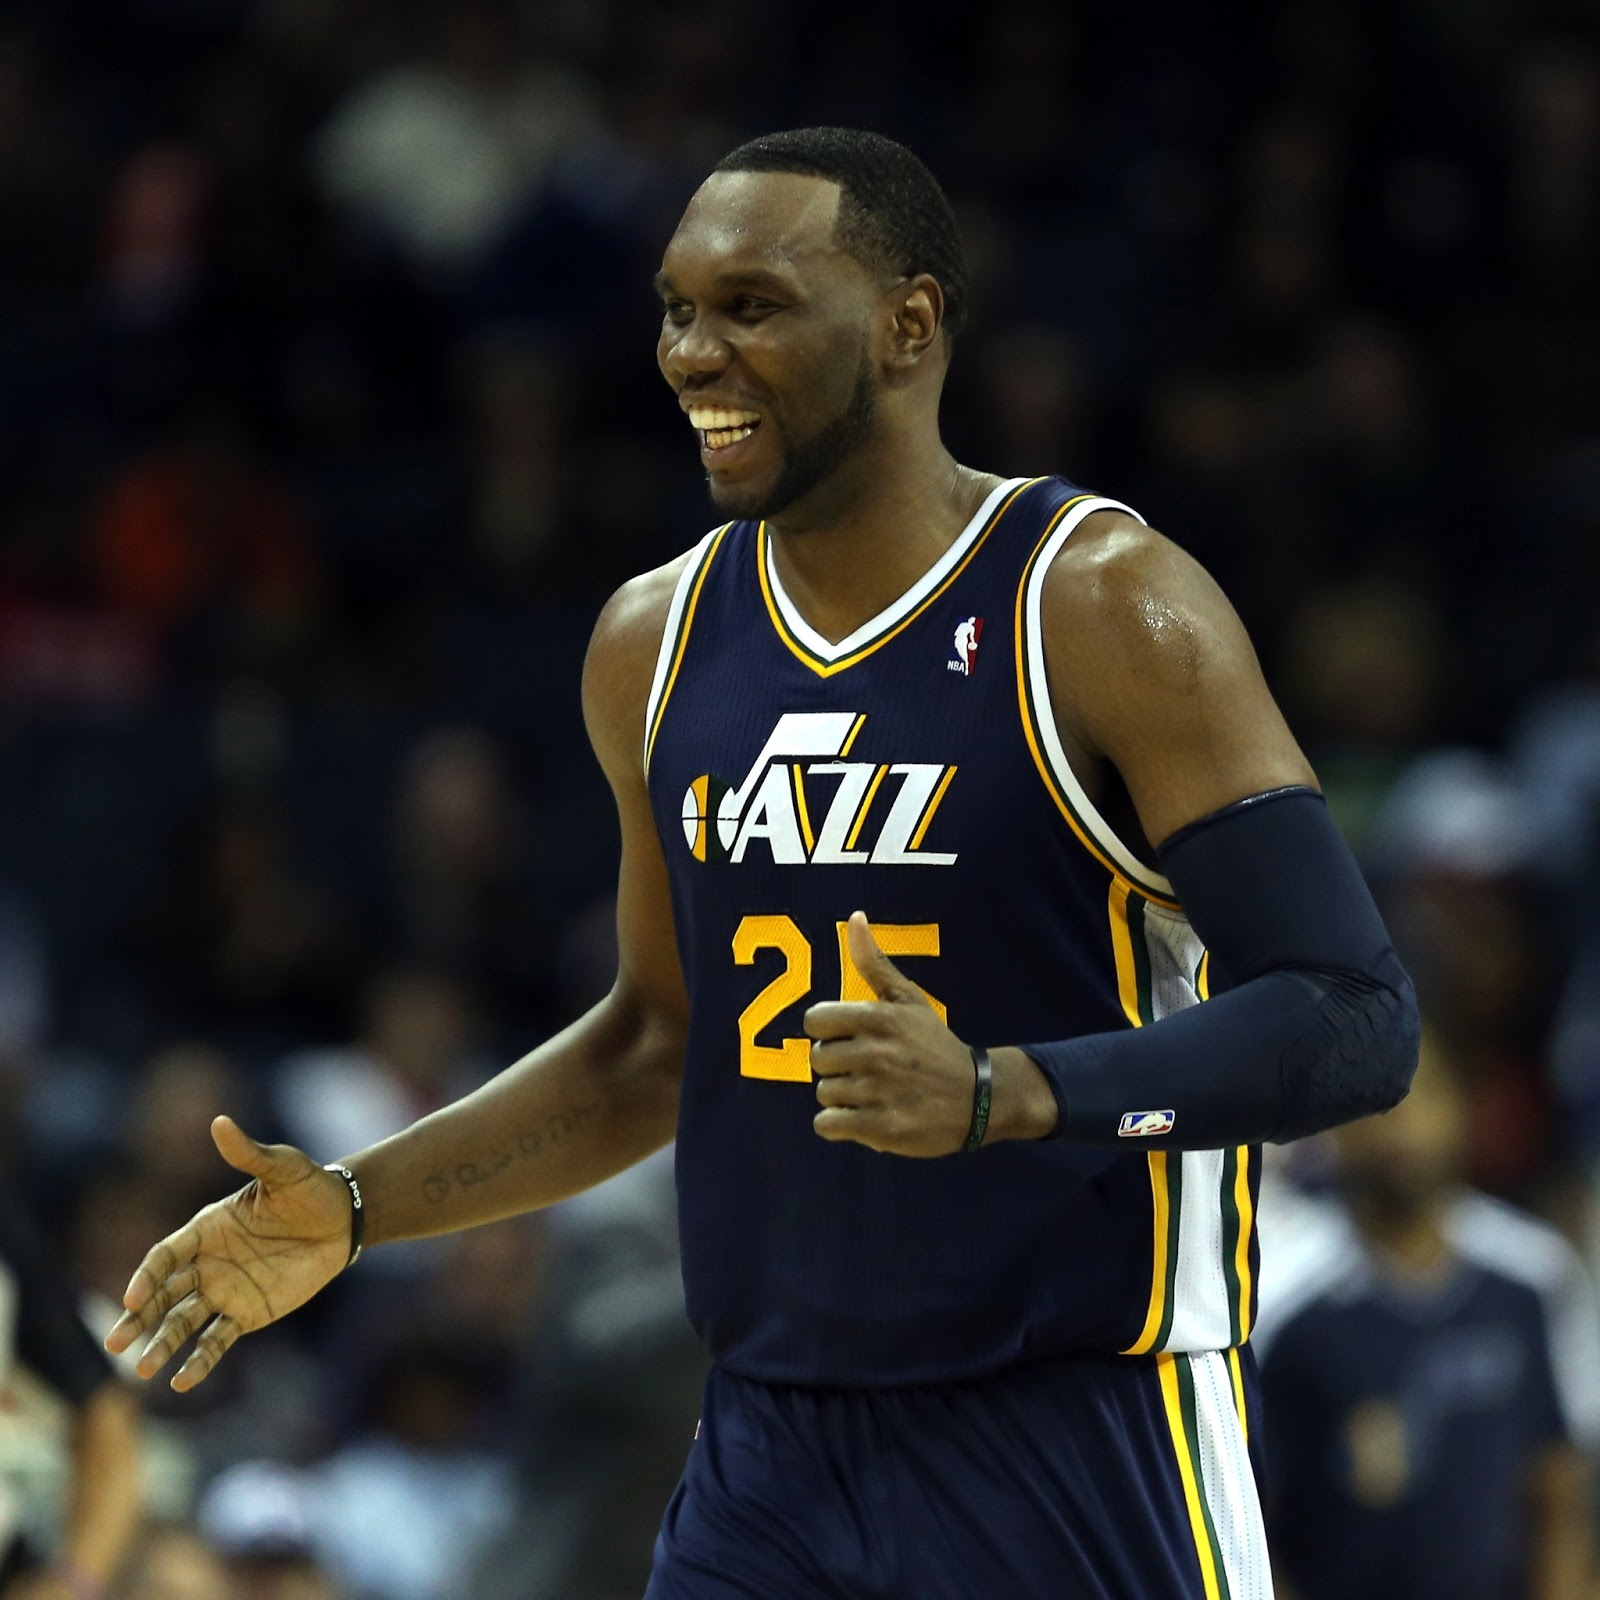 DrogeMiester s Lair Utah Jazz 2013 Season in Review